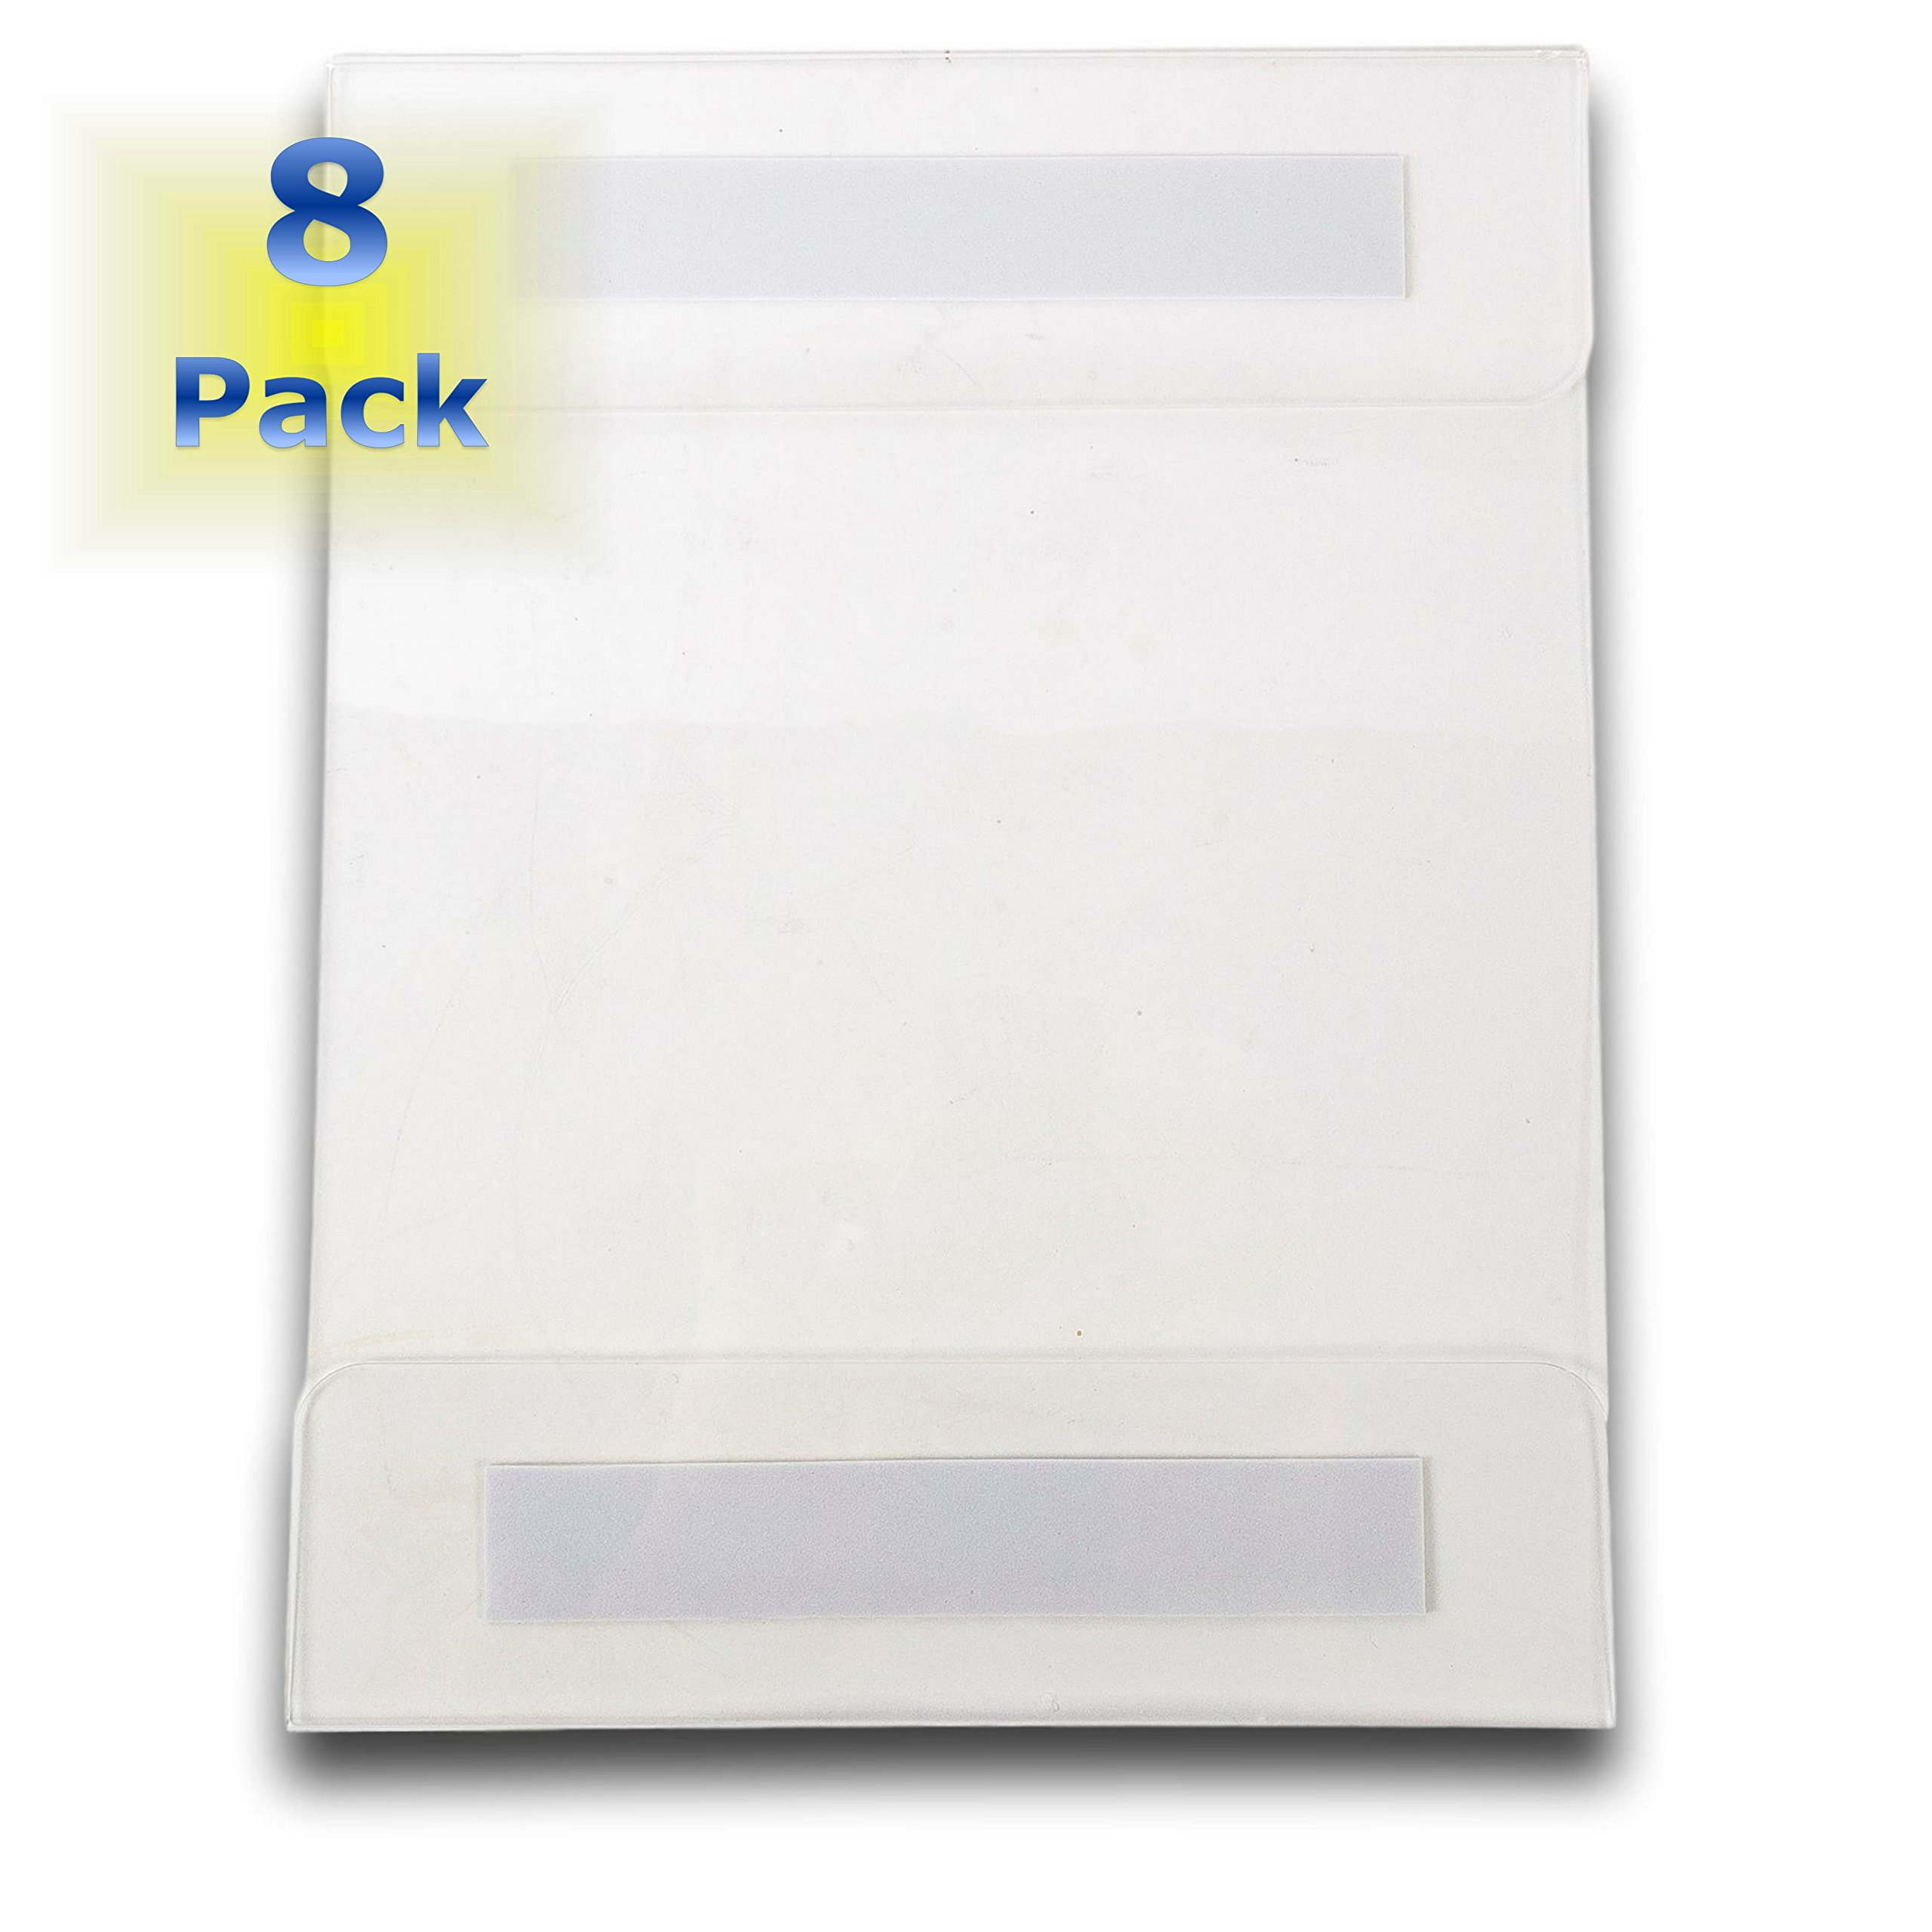 Universal Wall Mount Sign/Memo Holders By ClearView. [Set of 8] Crack & Scratch Resistant. Commercially Rated. Holds Standard 8.5'' X 11'' Paper. Use On Any Surface. 12 Month Manufacturers Warranty